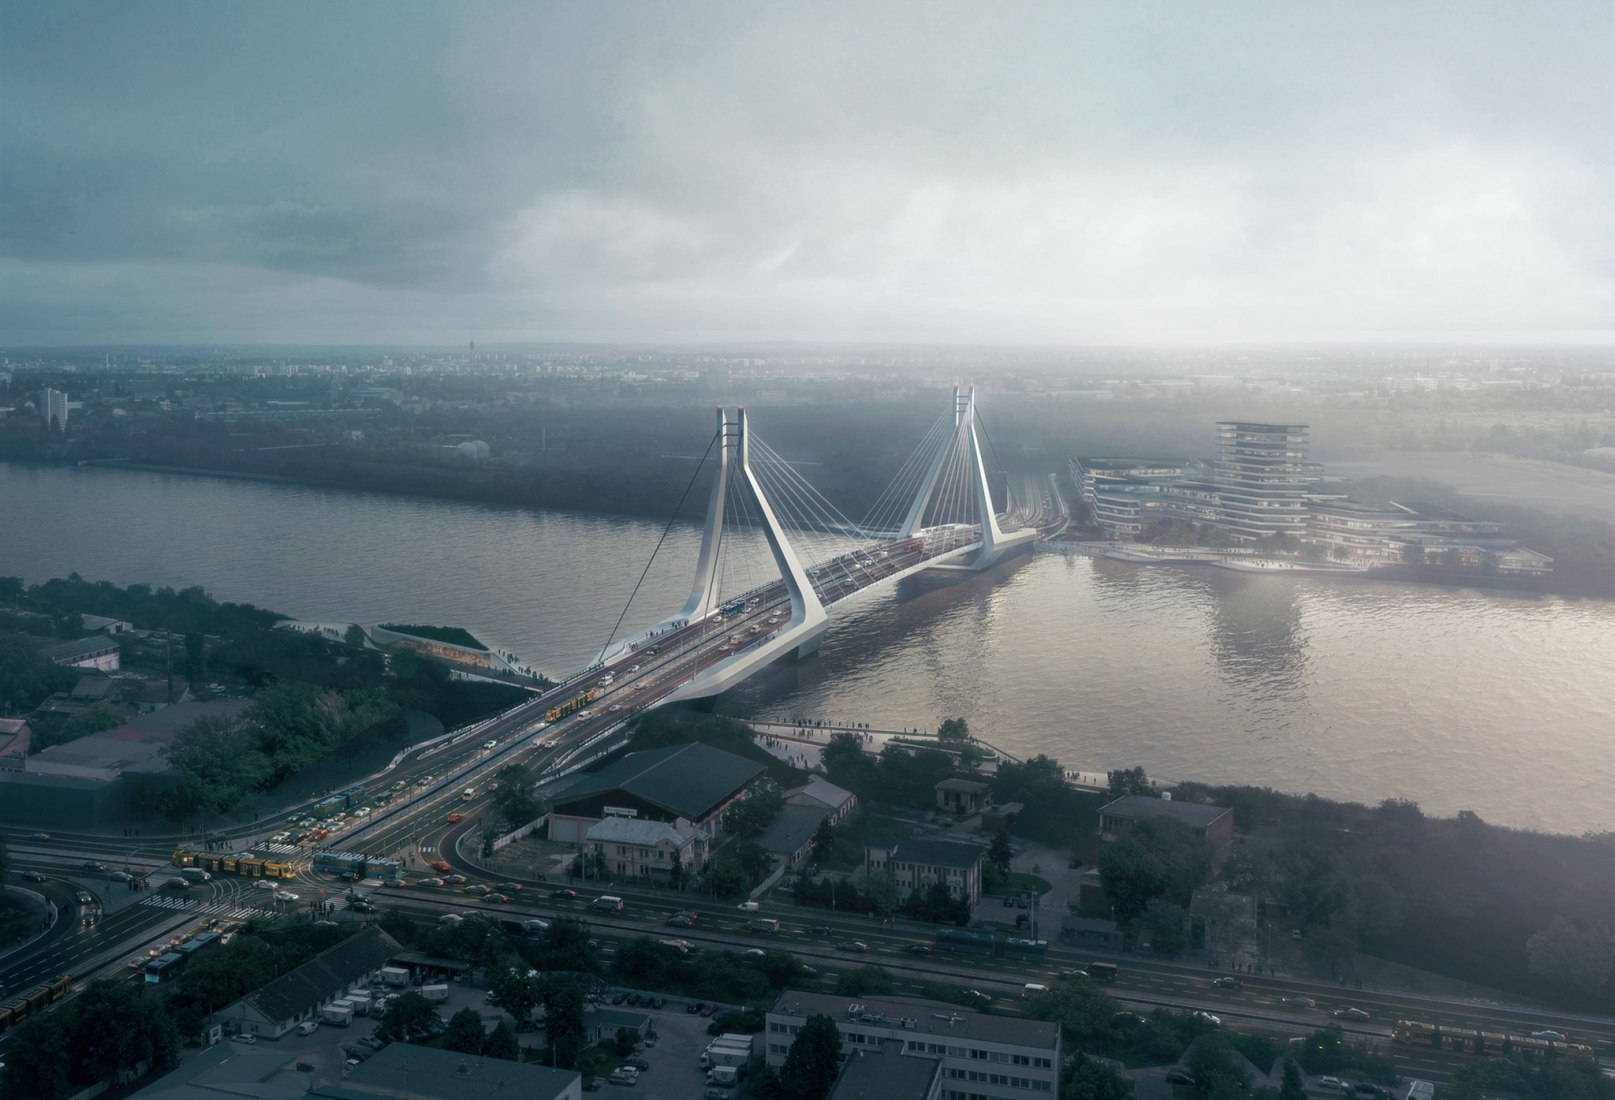 Overview. New Budapest Bridge project by UNStudio. Image by VA Render, courtesy of UNStudio